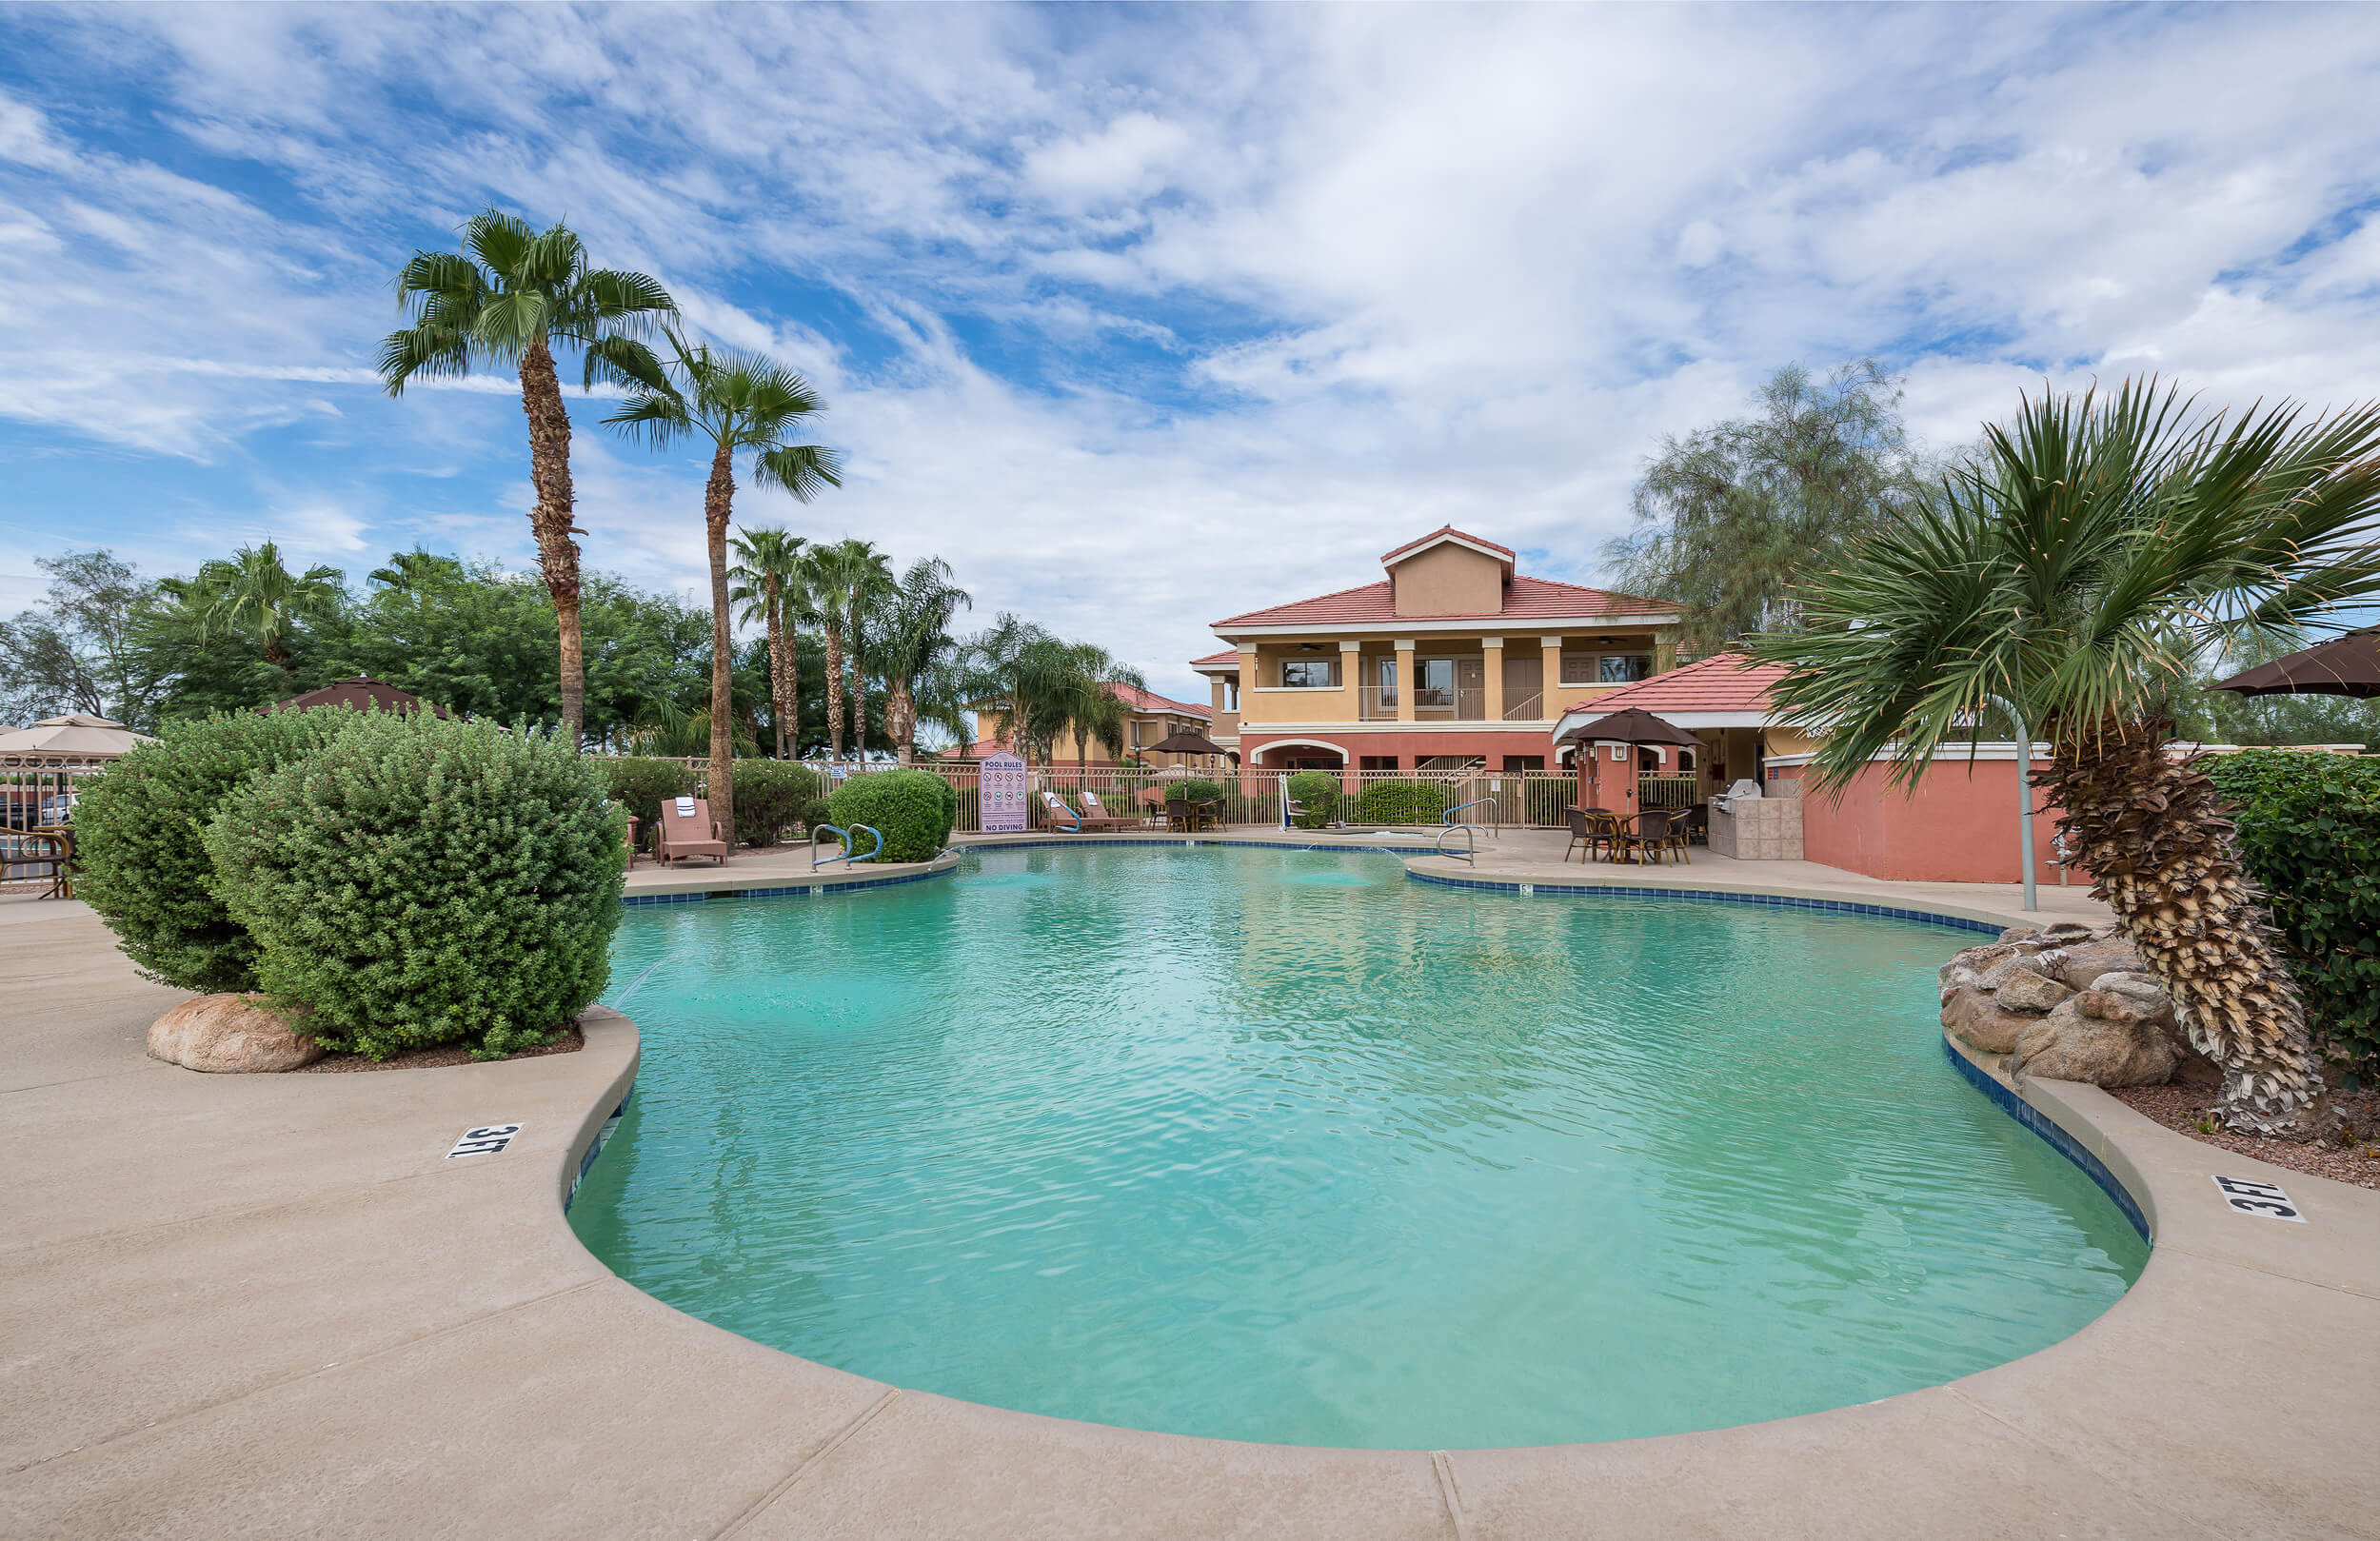 Heated outdoor pool surrounded by palm trees and landscaping | Westgate Painted Mountain Golf Resort